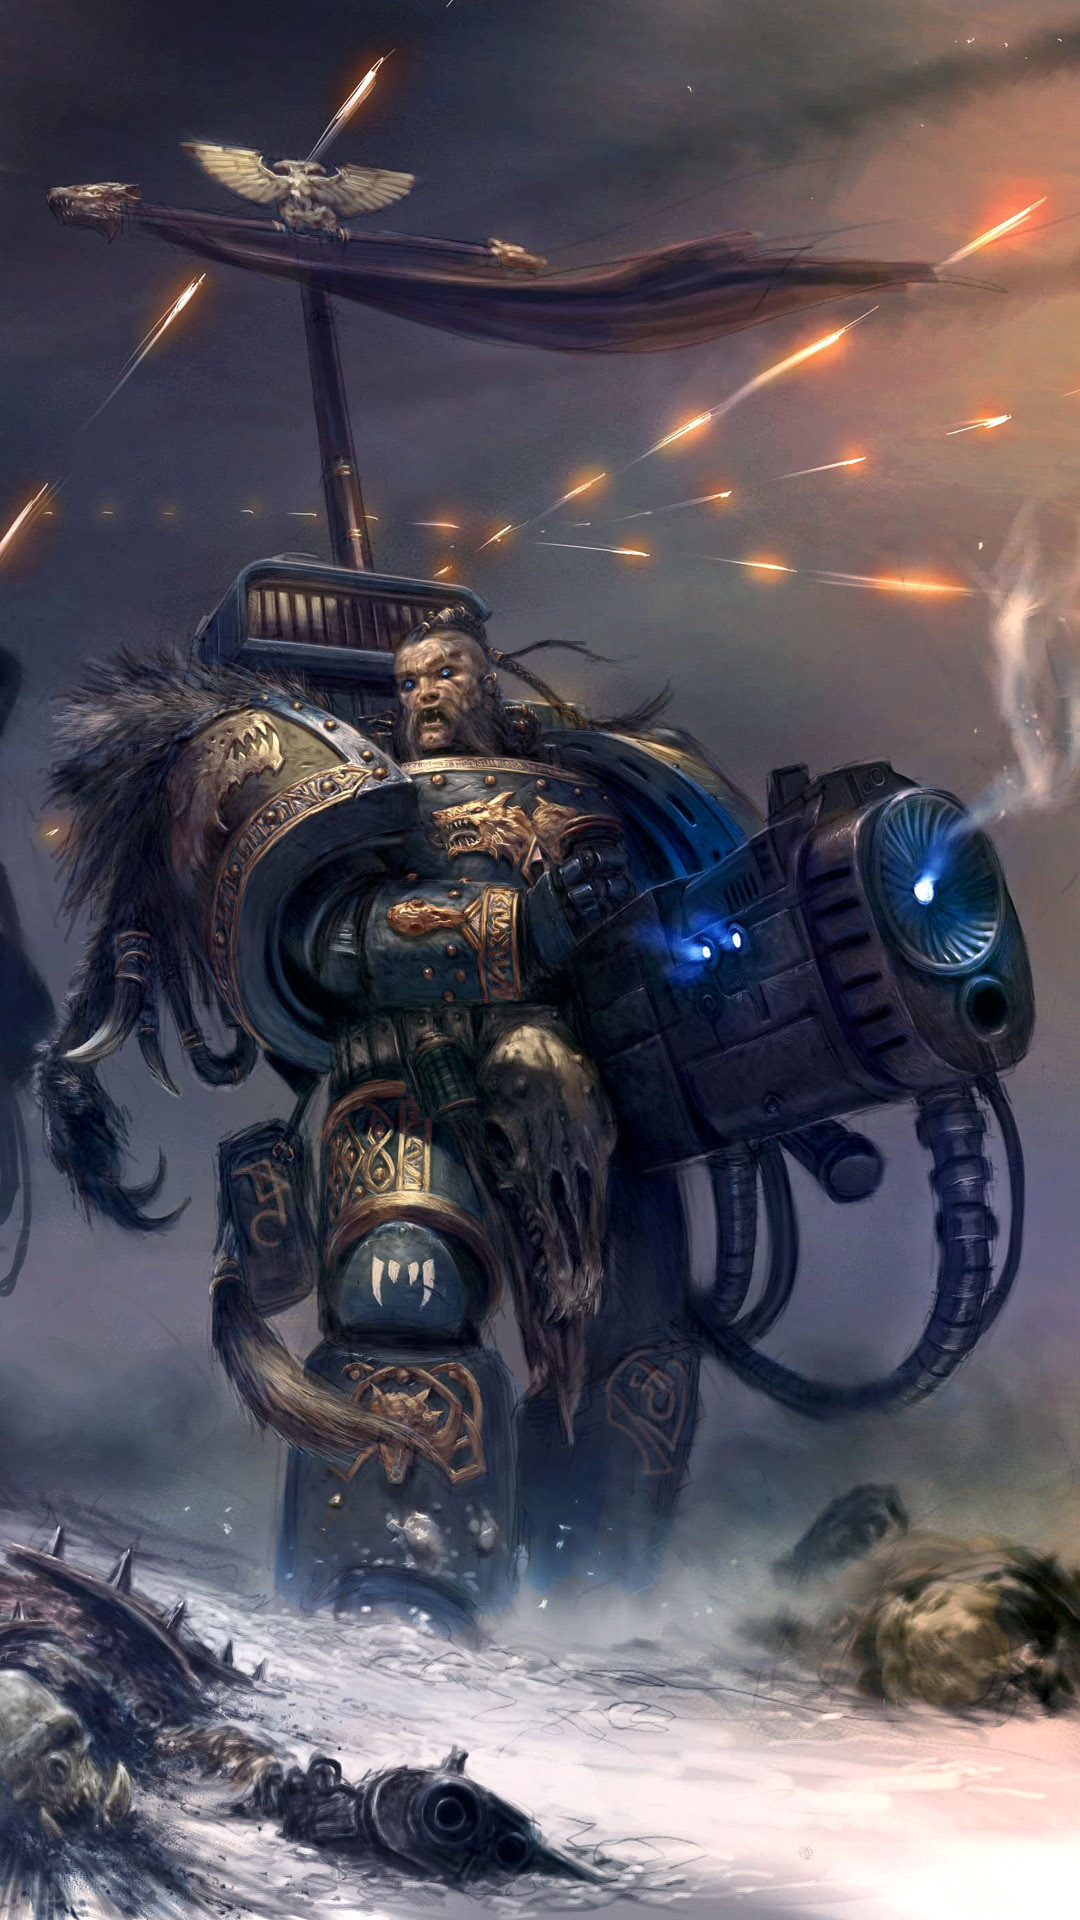 … Space Wolf – Warhammer 40,000 Game mobile wallpaper